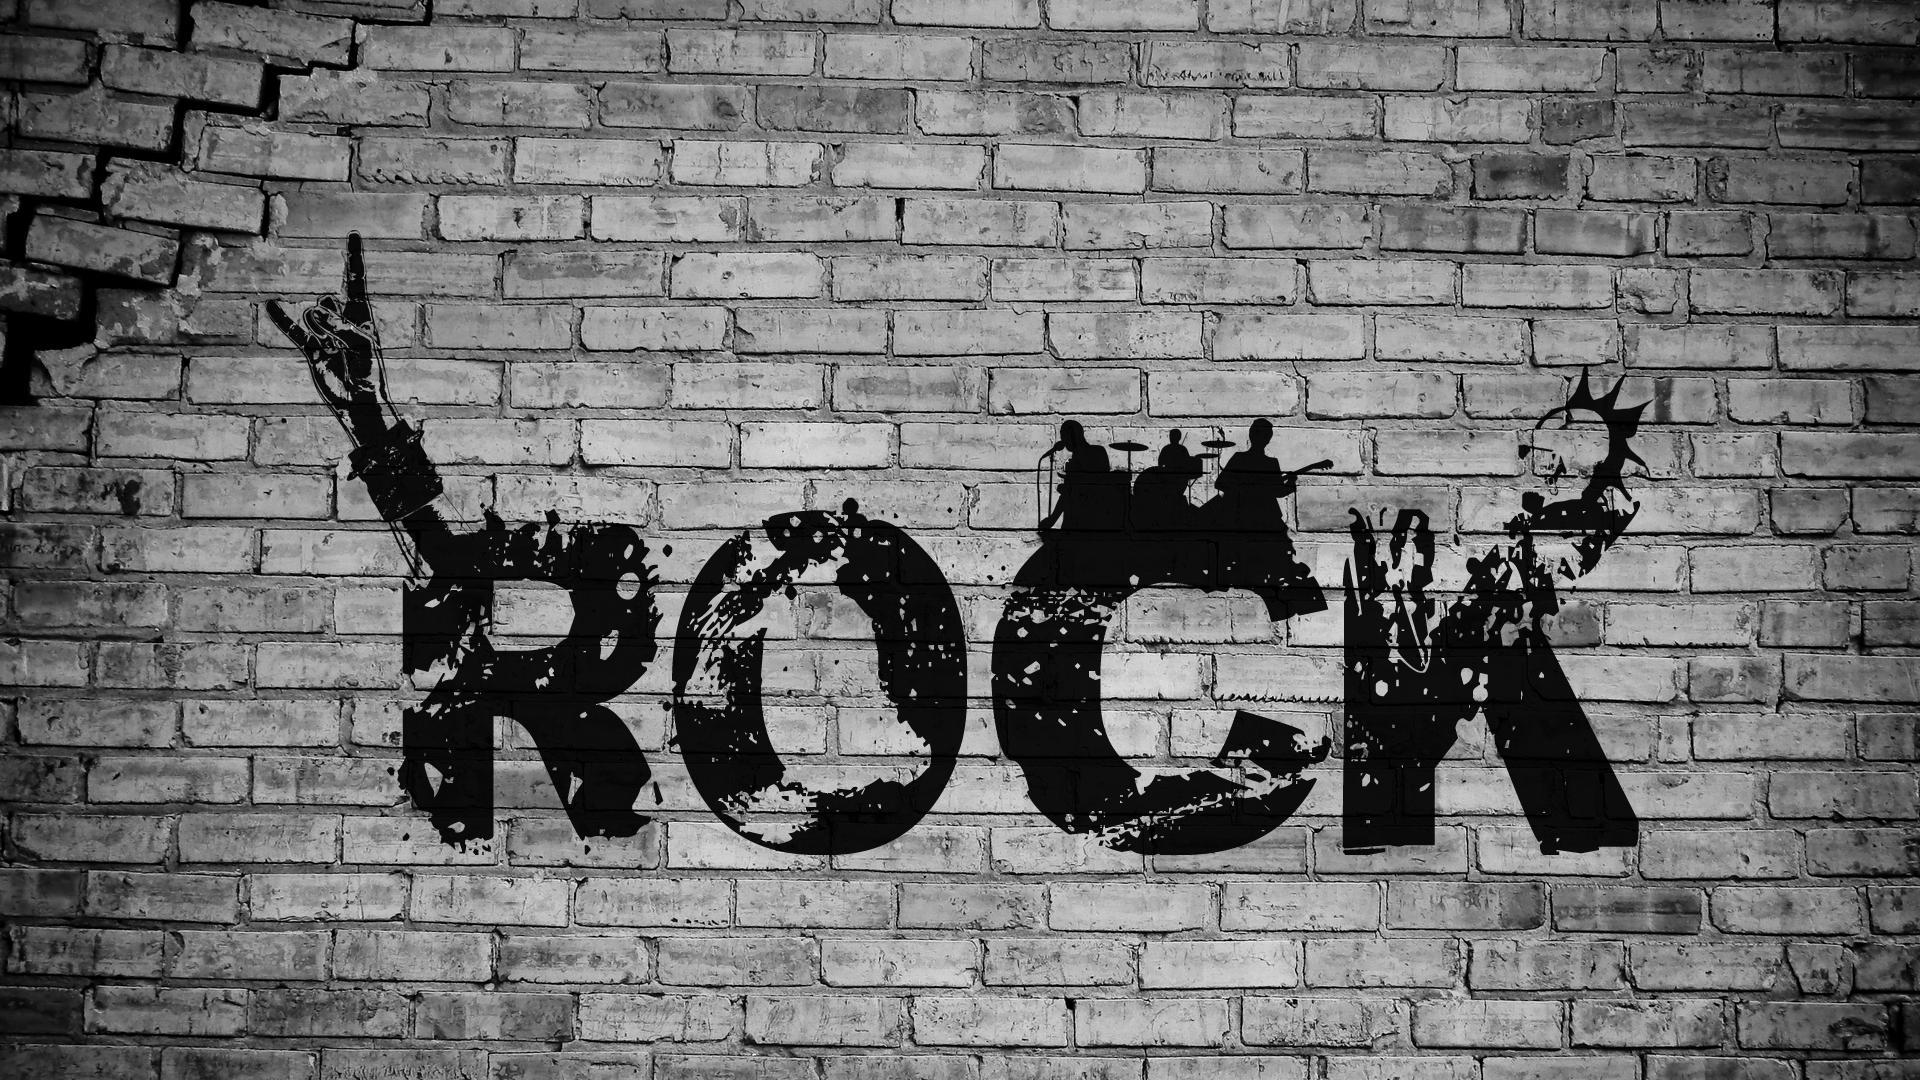 rock wallpaper3 - photo #6